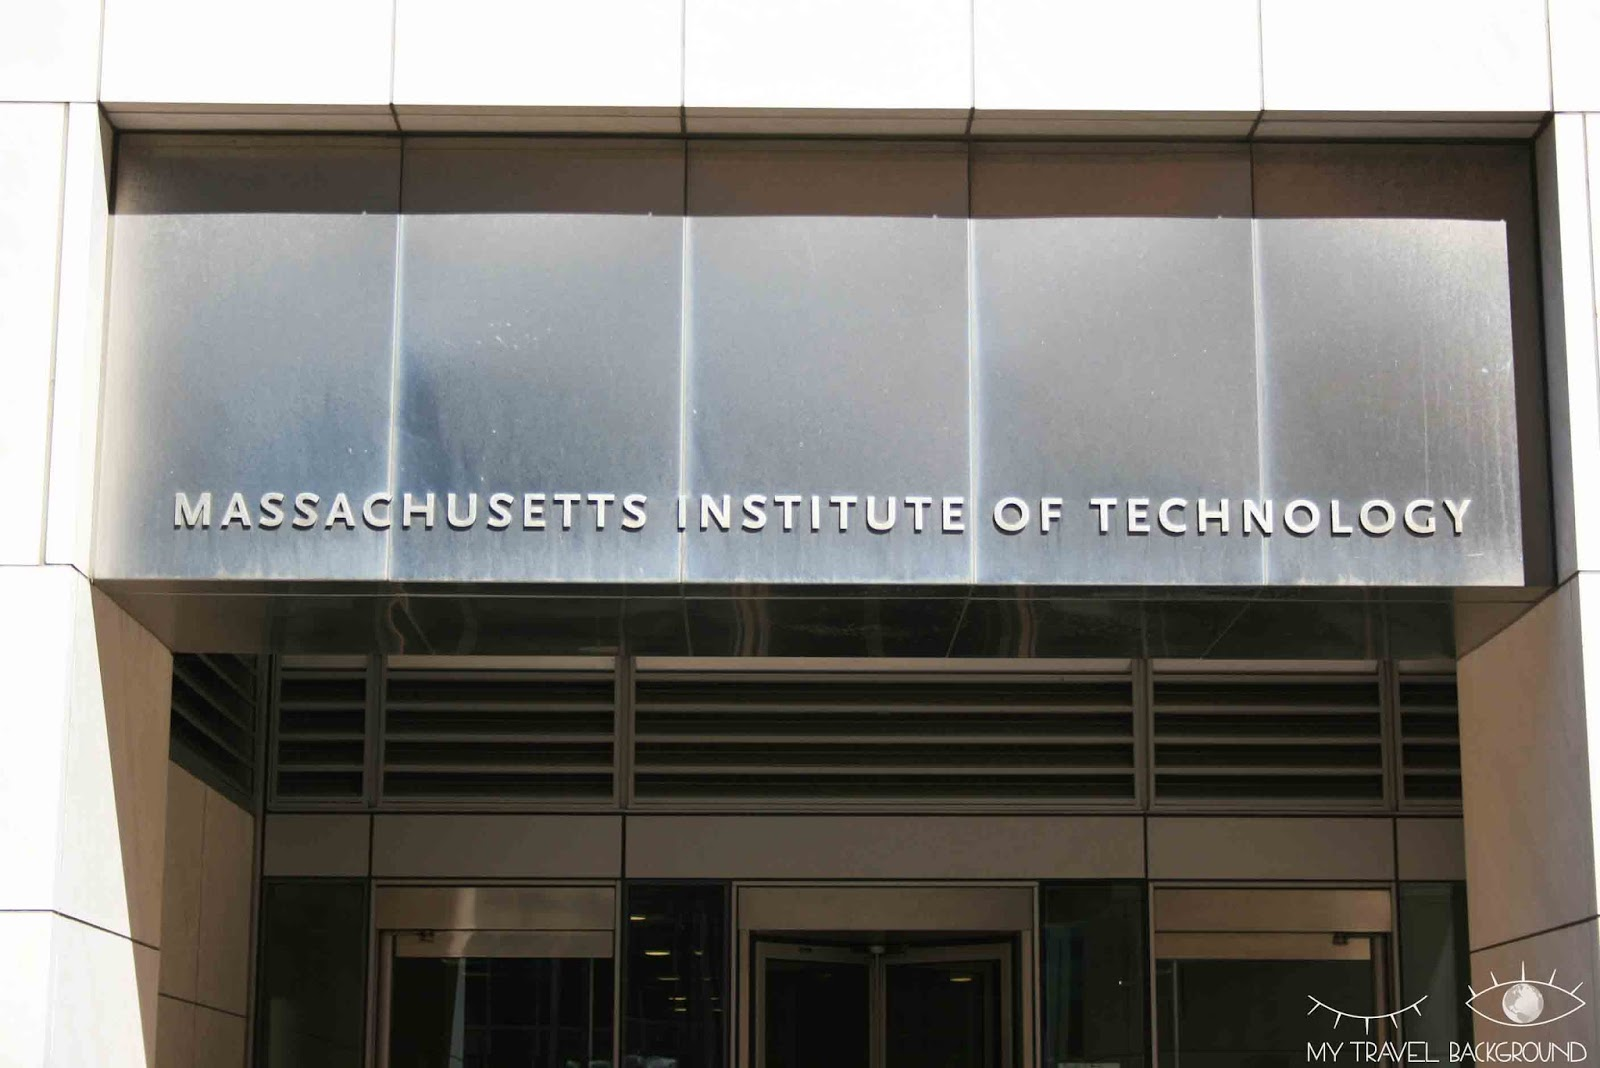 My Travel Background : Les principales universités américaines de la côte Nord-Est - Massachusetts Institute of Technology - MIT